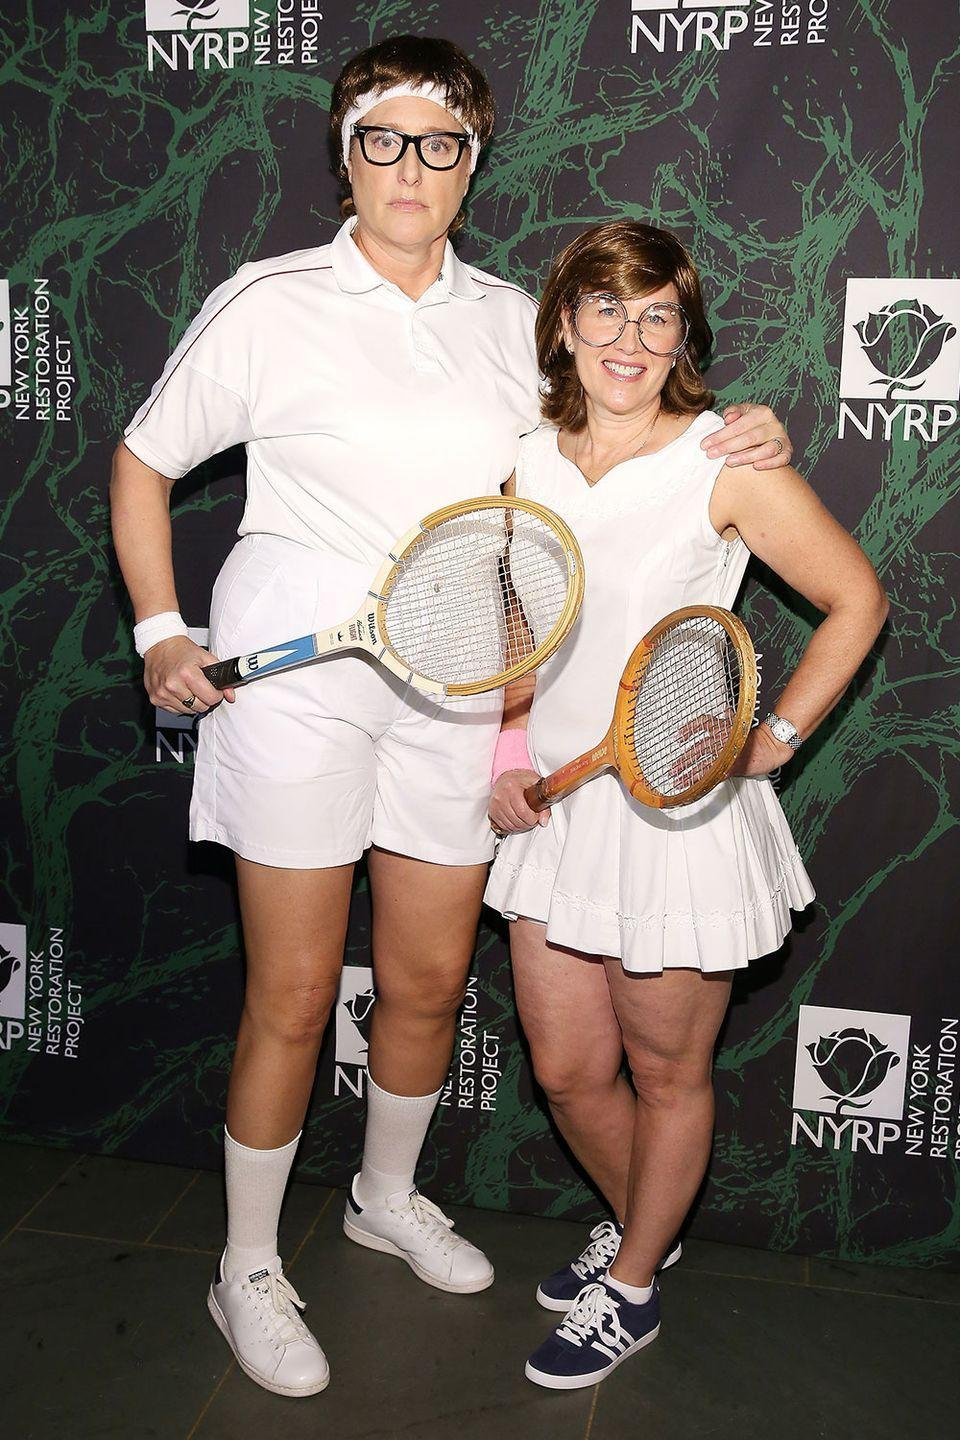 <p>Bobby Riggs and Billie Jean King may not be the first couples costume you think of, but Judy Gold and Elysa Halpern absolutely nailed it at Bette Midler's annual Hulaween party in 2017.</p>